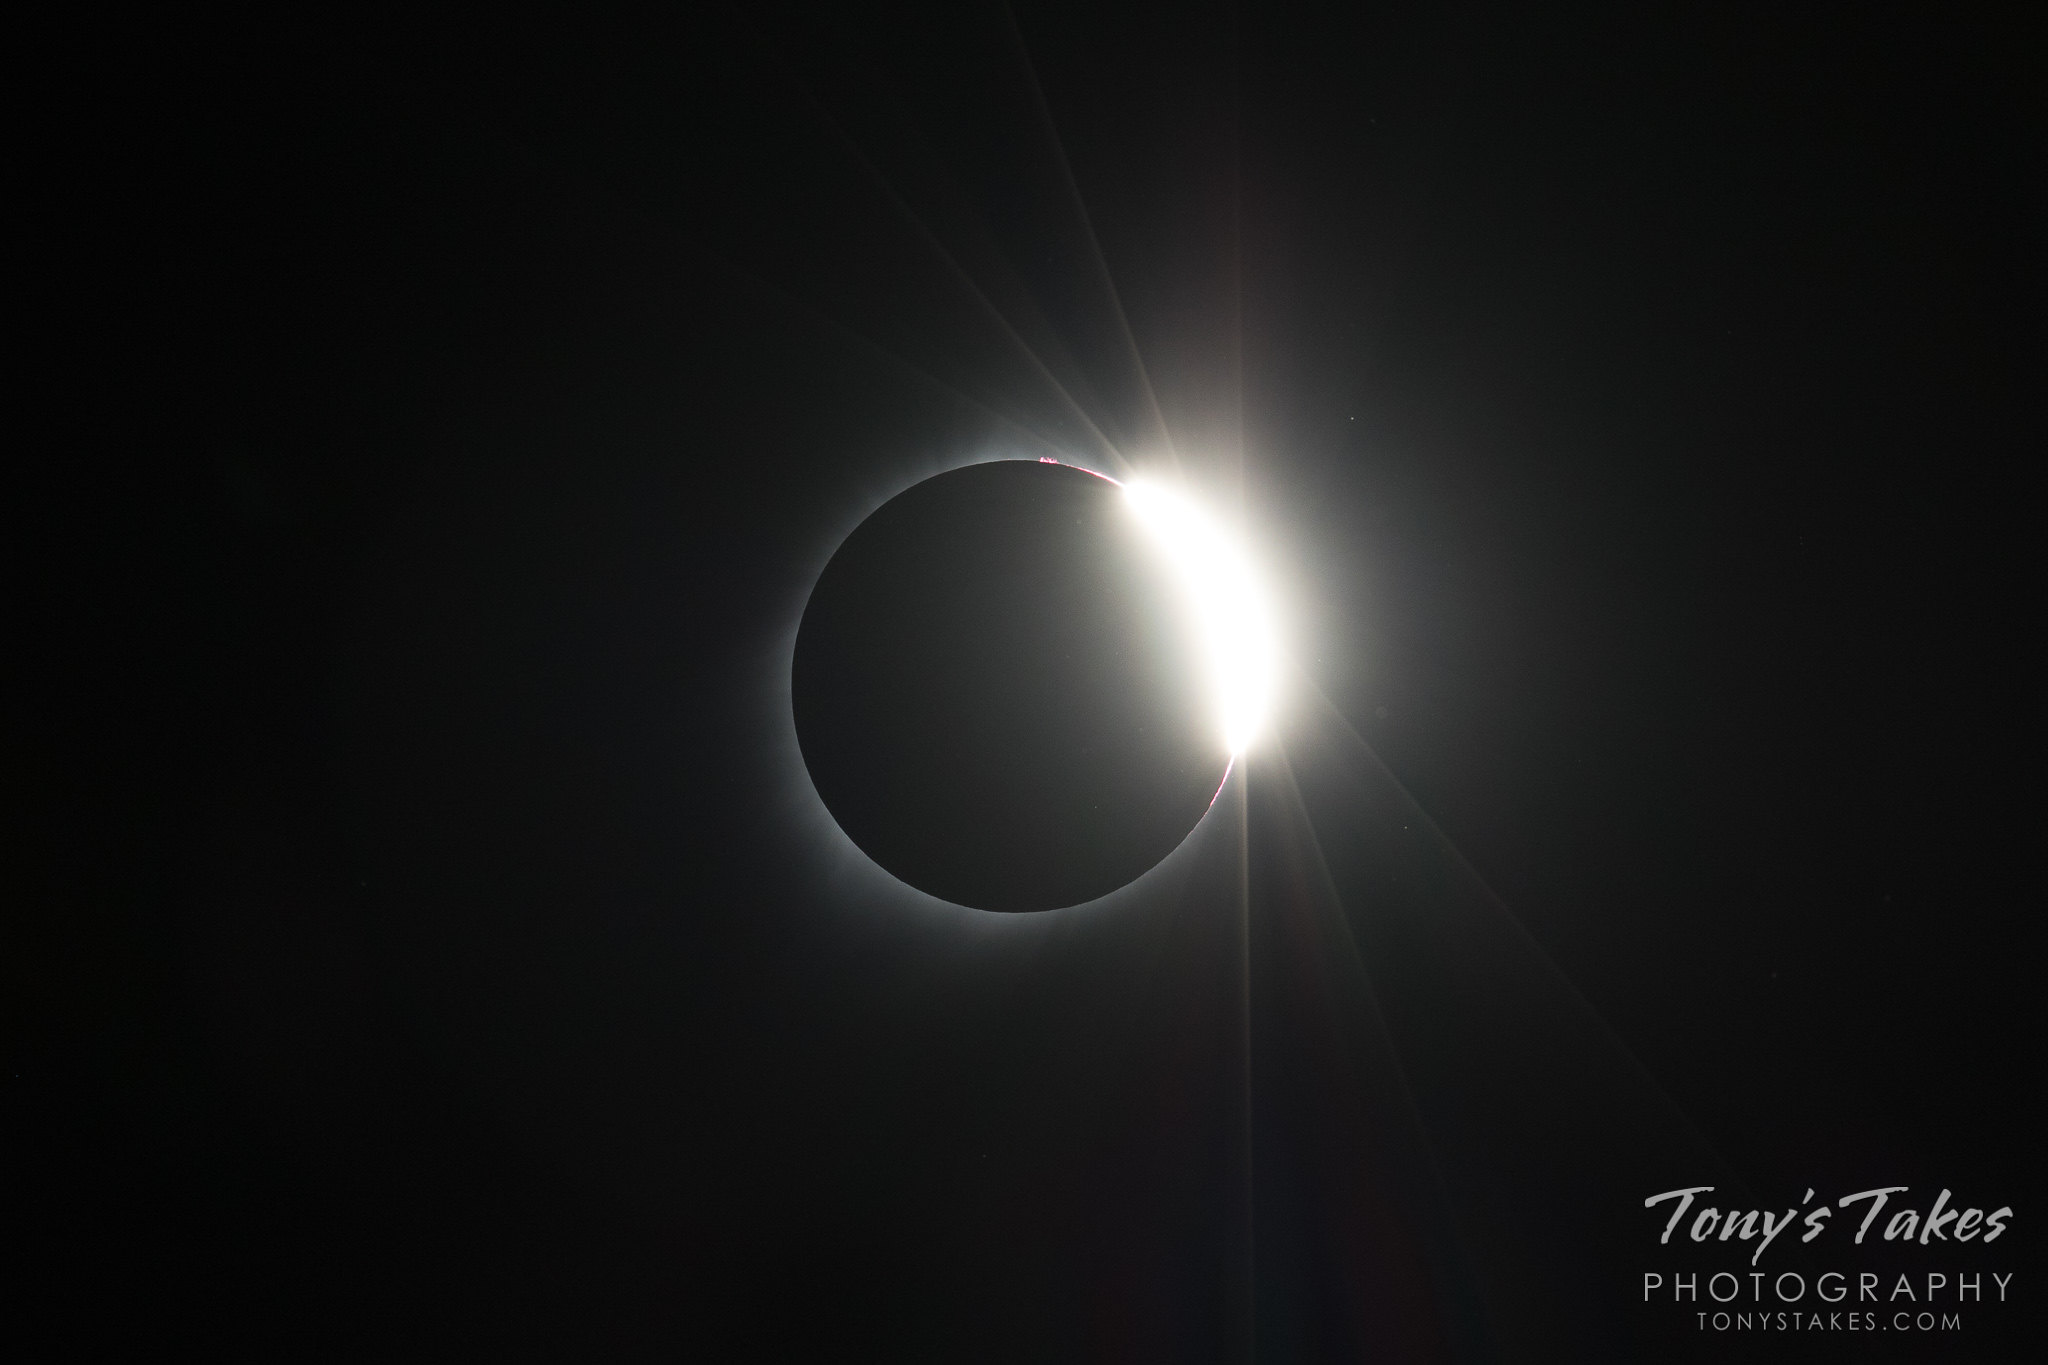 The diamond ring at the end of totality during the solar eclipse.  (© Tony's Takes)